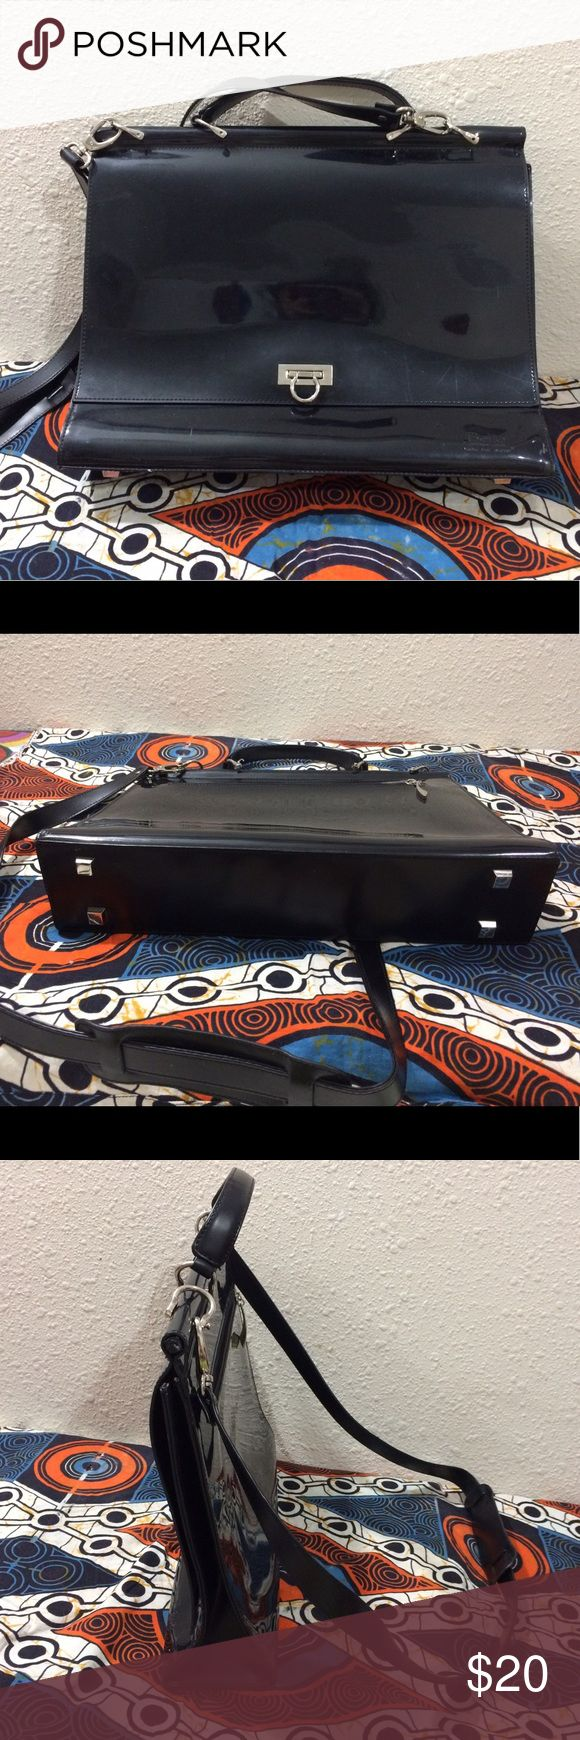 BEIJO Business Class Briefcase Messenger Bag Black Women's BEIJO Briefcase handles or long Crossbody strap ....black w/silver hardware  Good overall condition w minor scuffing on corners etc please see photos   Height 12 depth 3 inches length 16 strap 27 Beijo Bags Laptop Bags